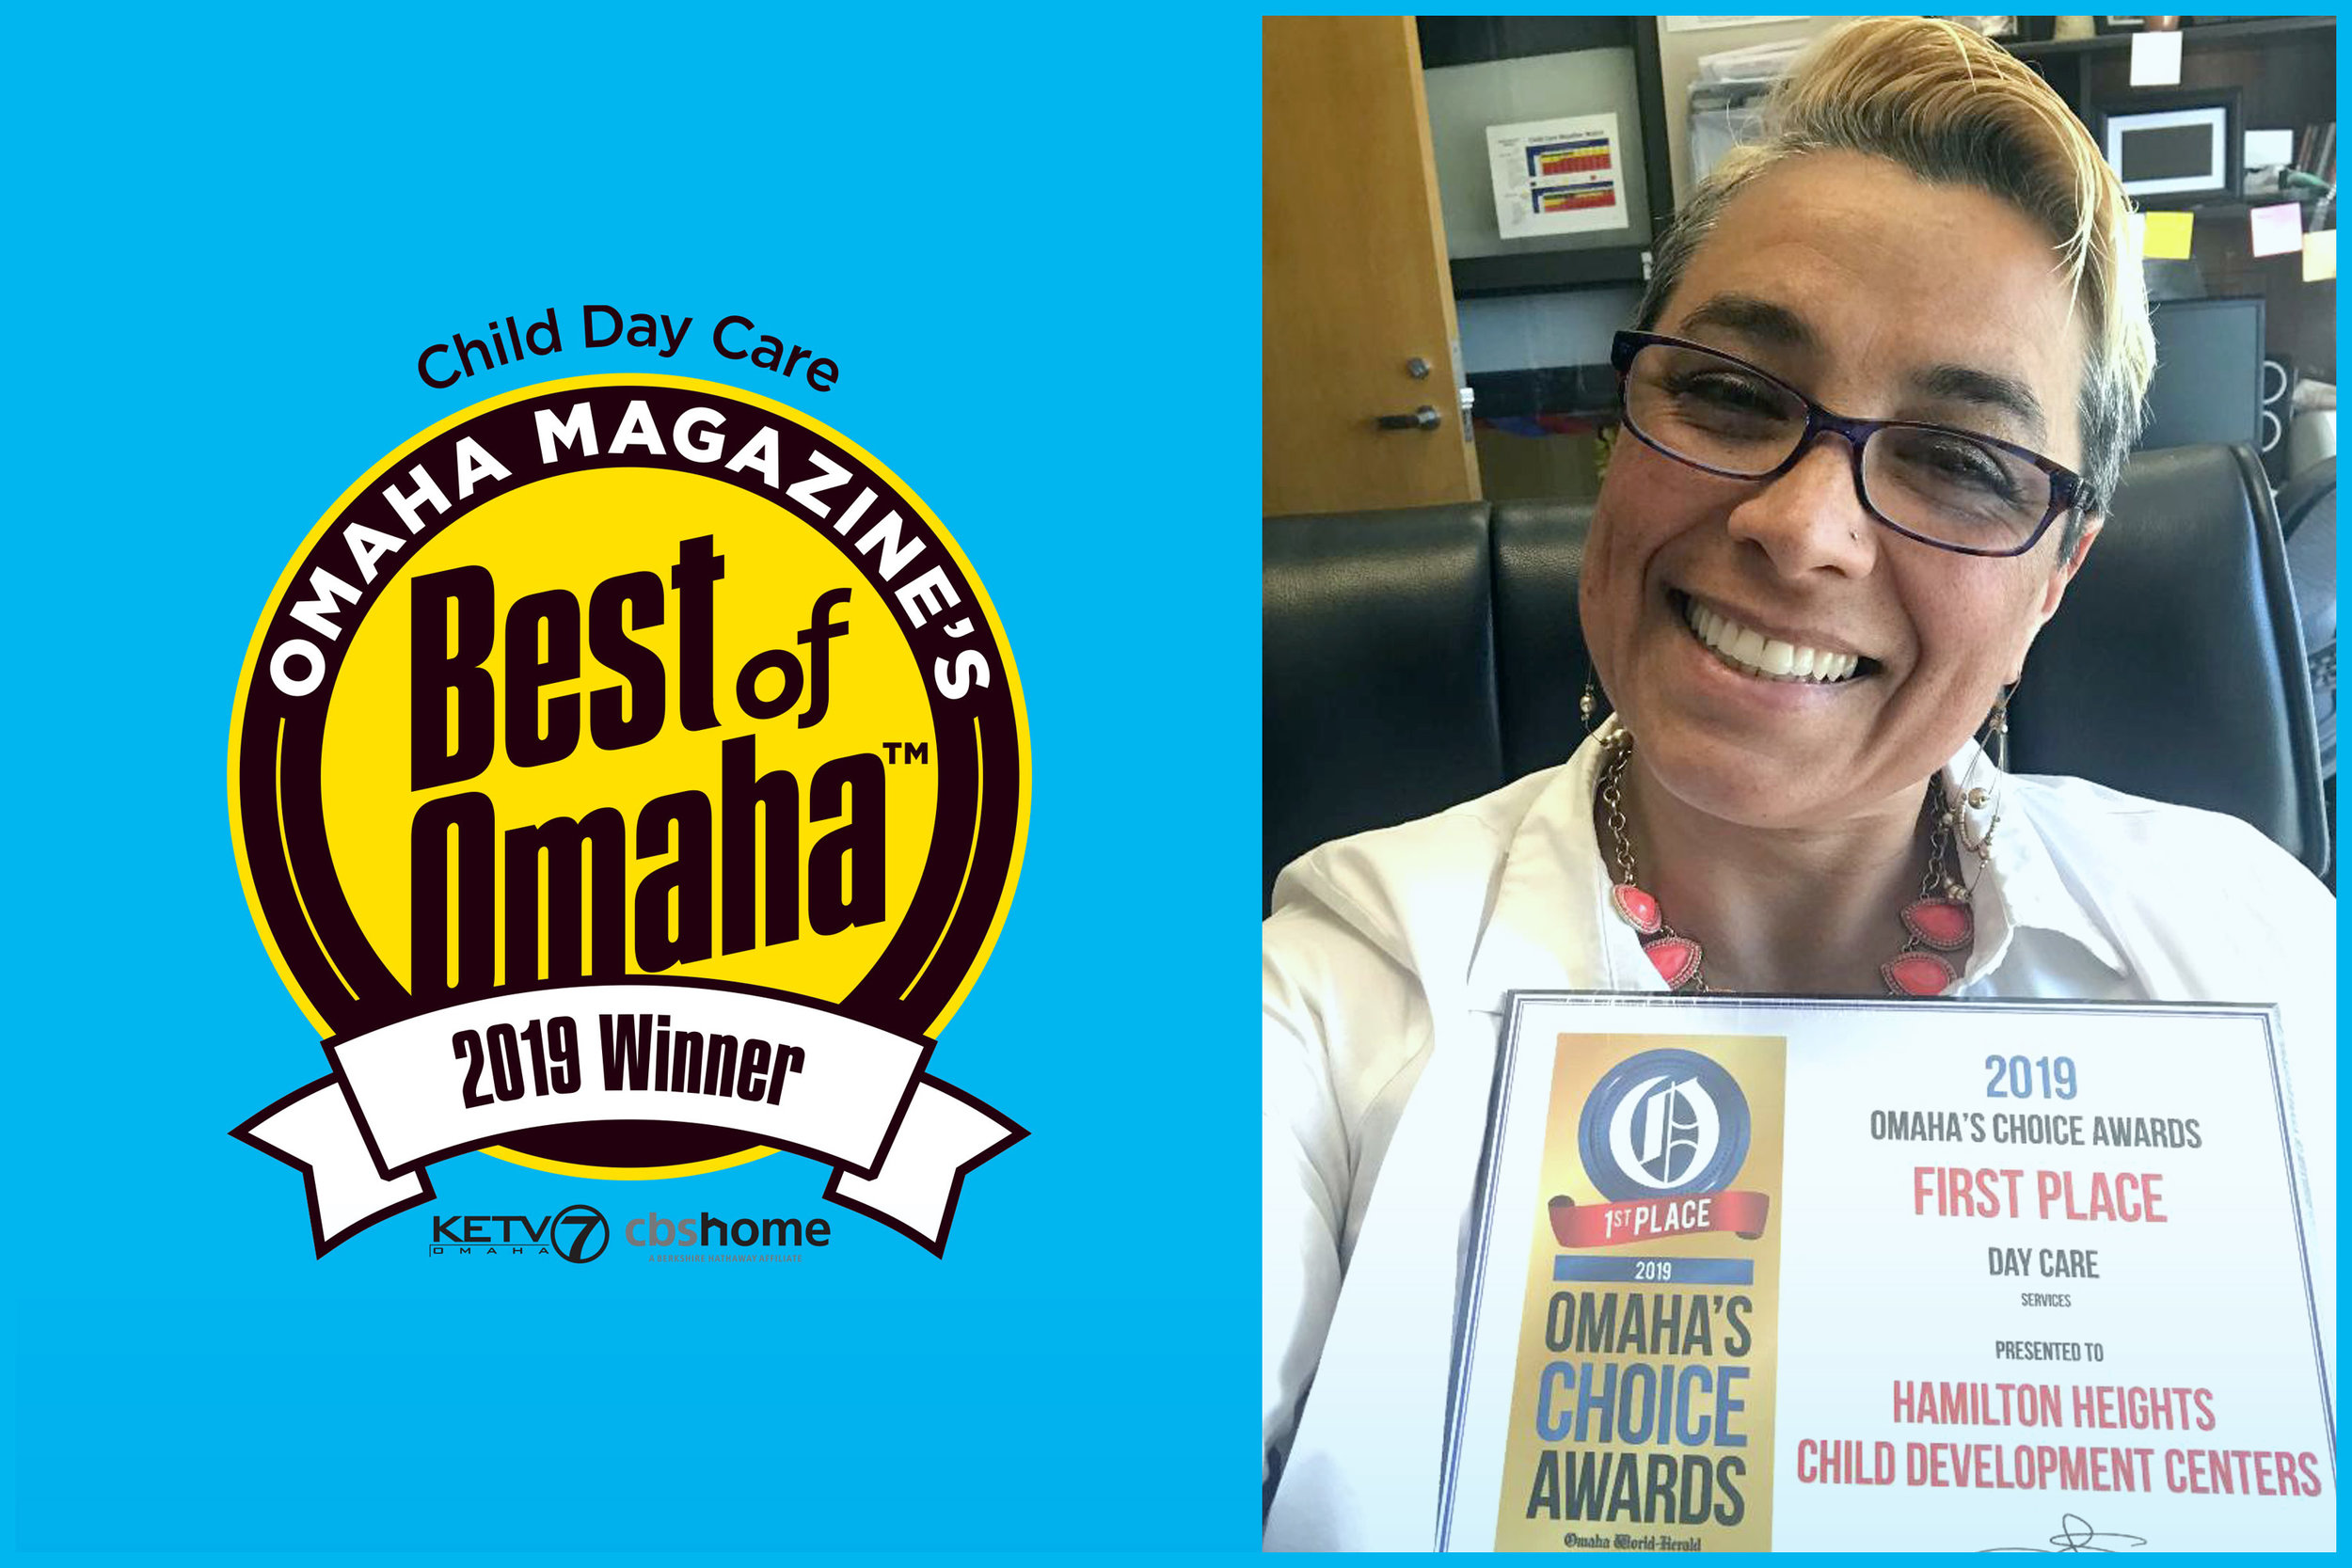 Best of Omaha 2019 - Hamilton Heights Child Development Centers have been voted Best of Omaha in the daycare category for six consecutive years. Thank you, Omaha! It is an honor to care for your children.